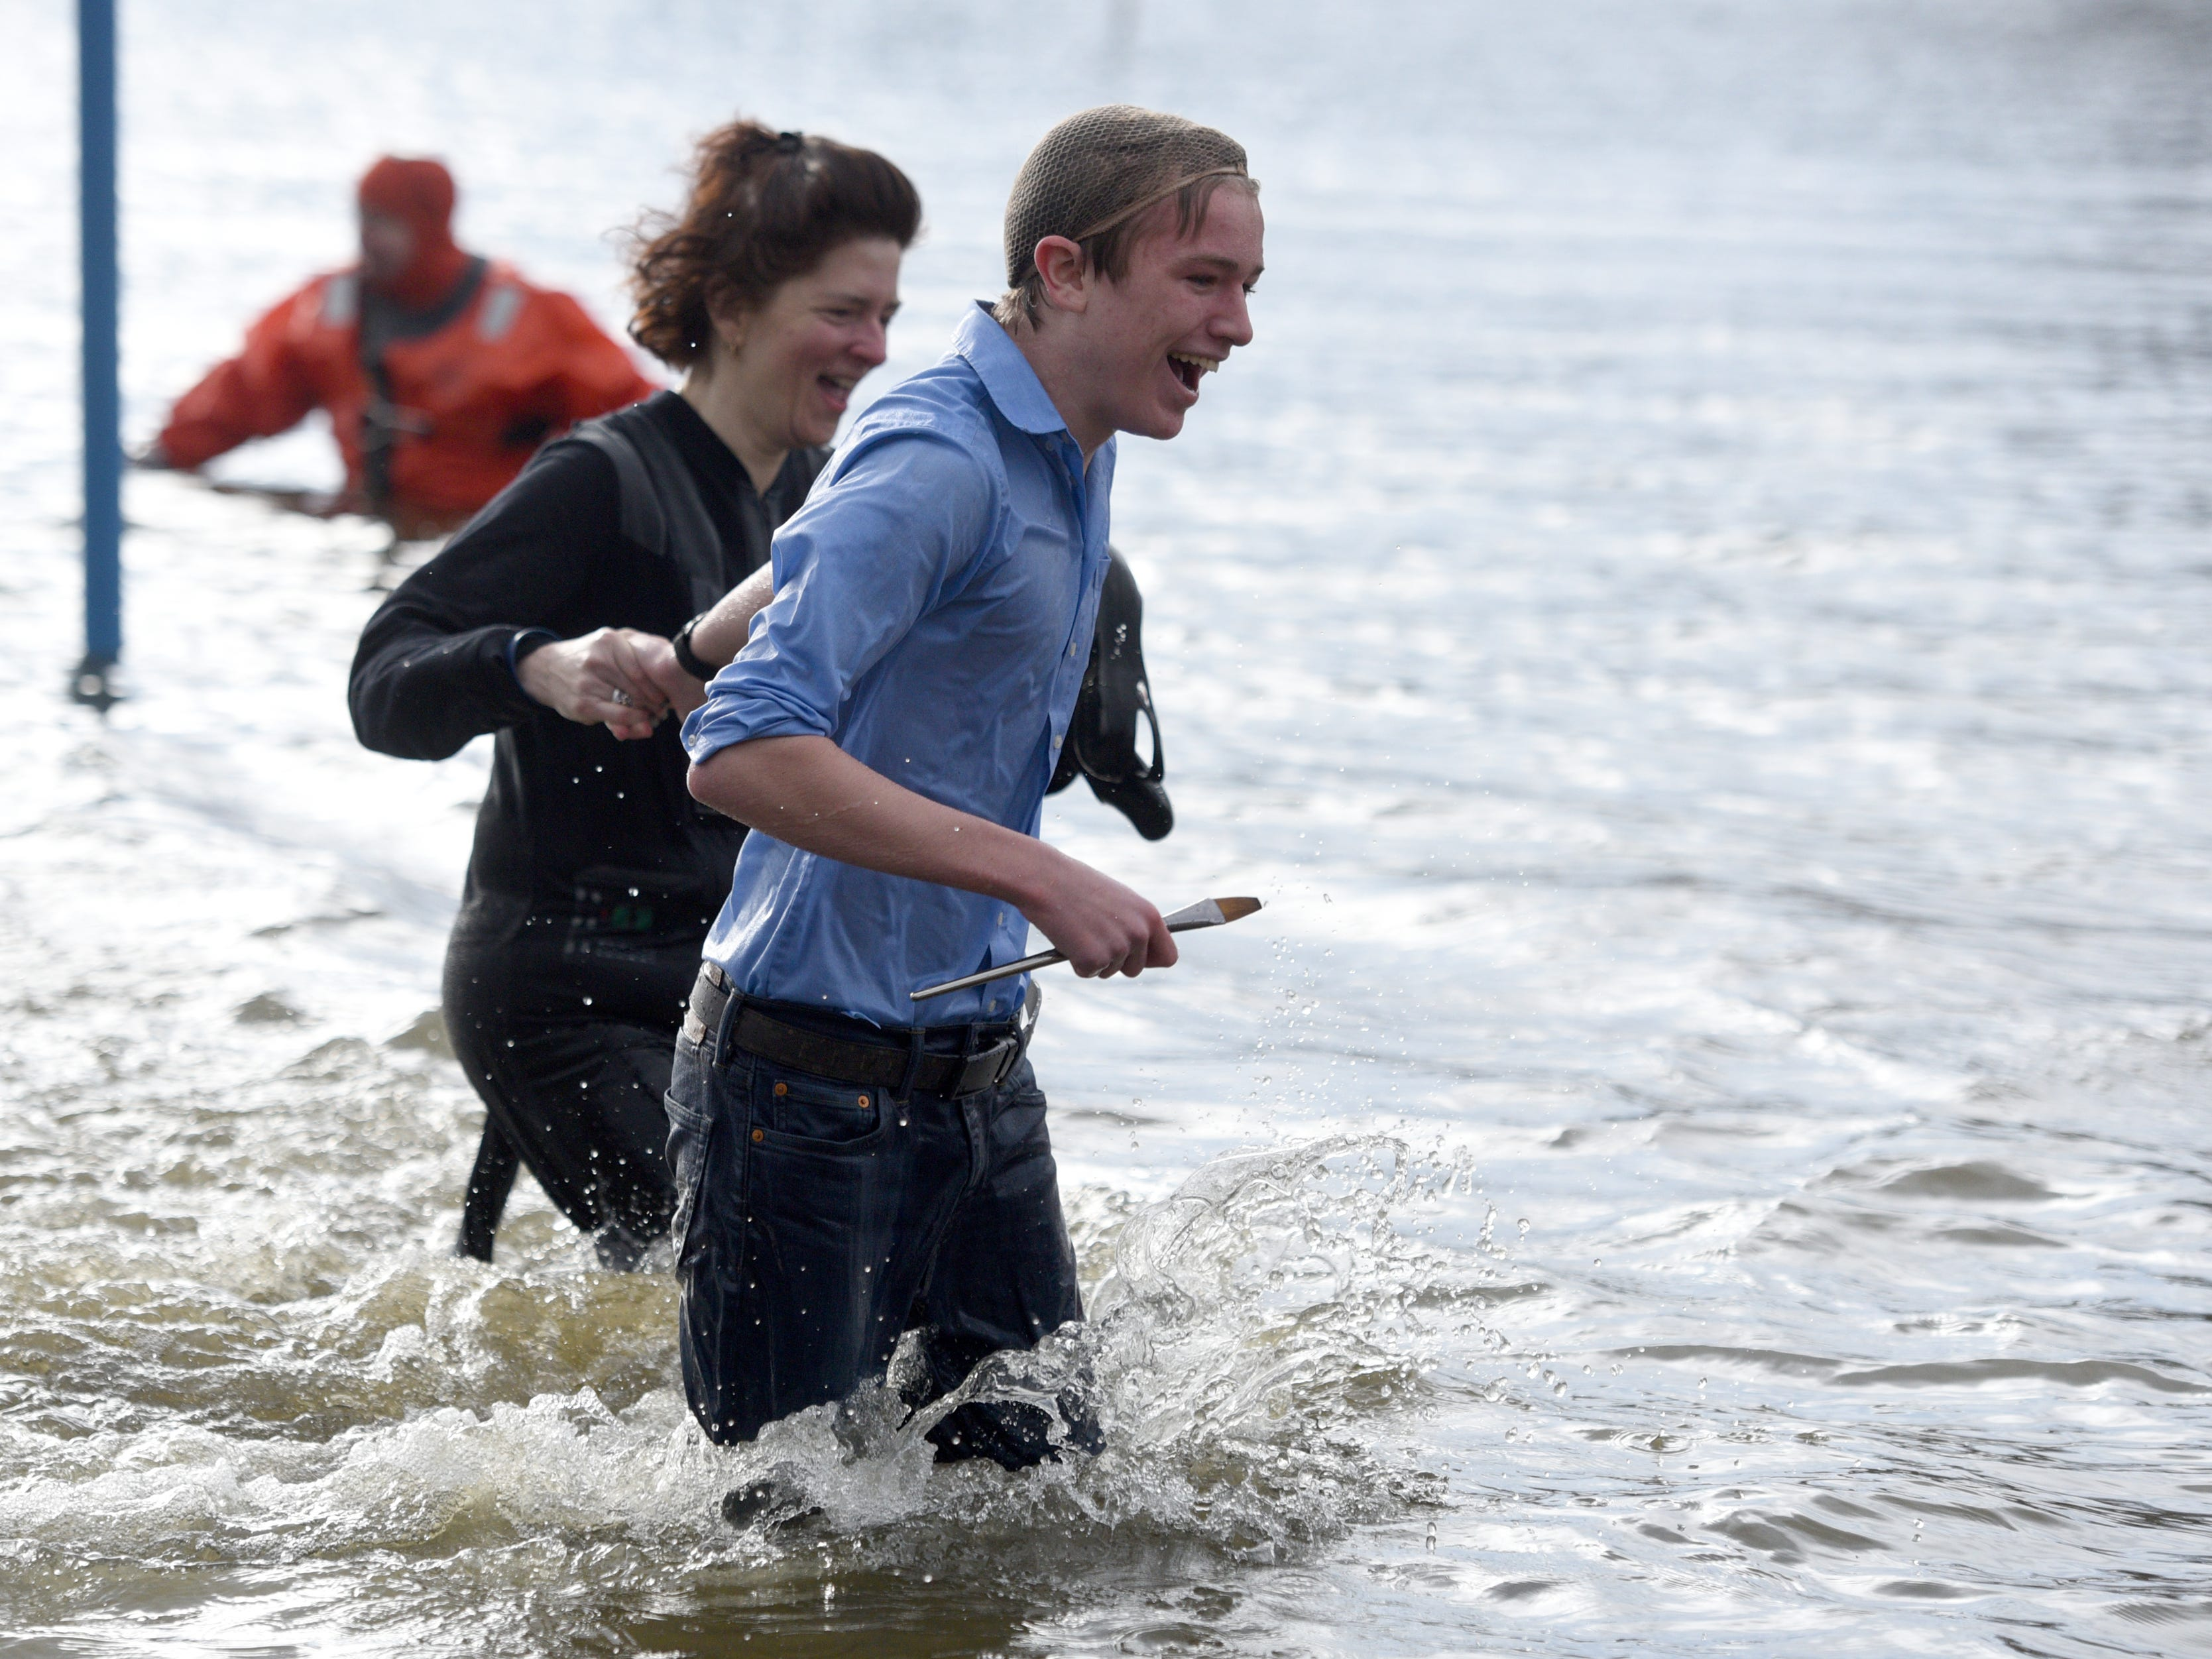 Participants in the 4th annual Pequannock Polar Plunge run out of the lake in Pequannock Valley Park on Sunday, January 6, 2019.